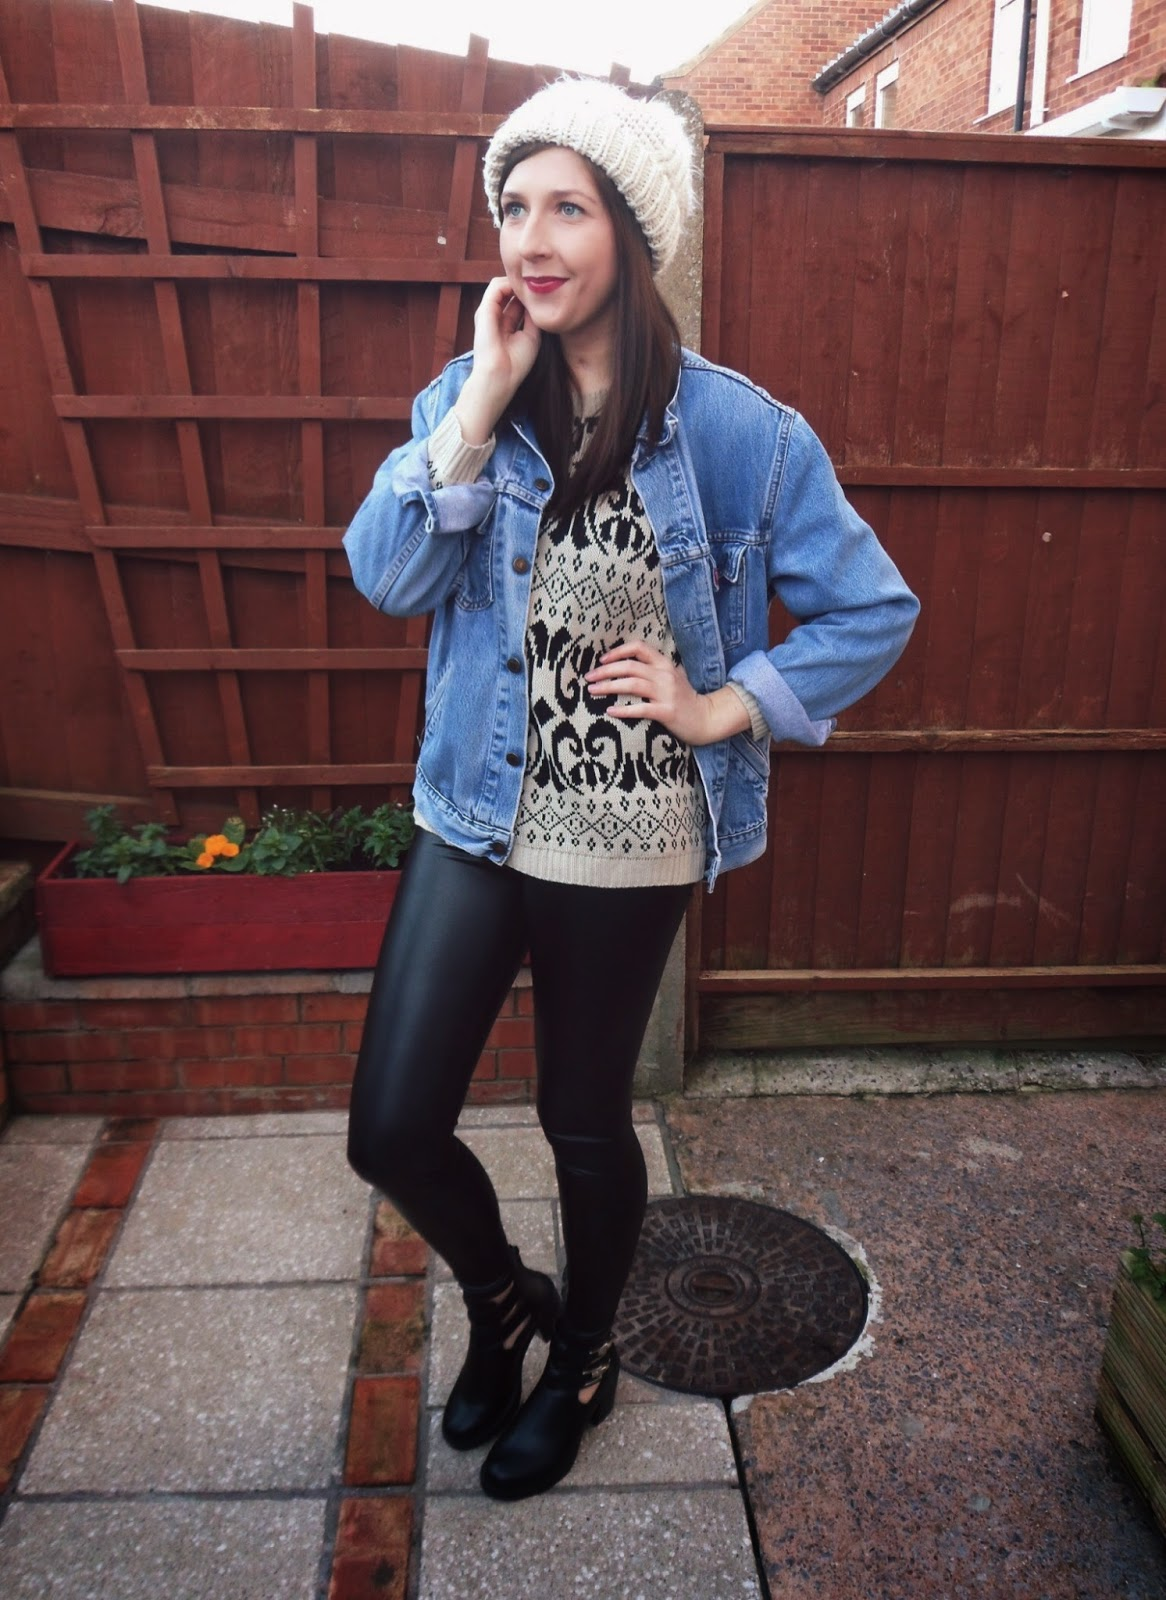 asseenonme, primark, asosmarketplace, vintage, lotd, lookoftheday, wiw, whatimwearing, ootd, outfitoftheday, levis, chiarafashion, christmasjumper, leatherleggings, shoezone, boots, bobblehat, topshop, fashion, fashionbloggers, fbloggers, fblogger